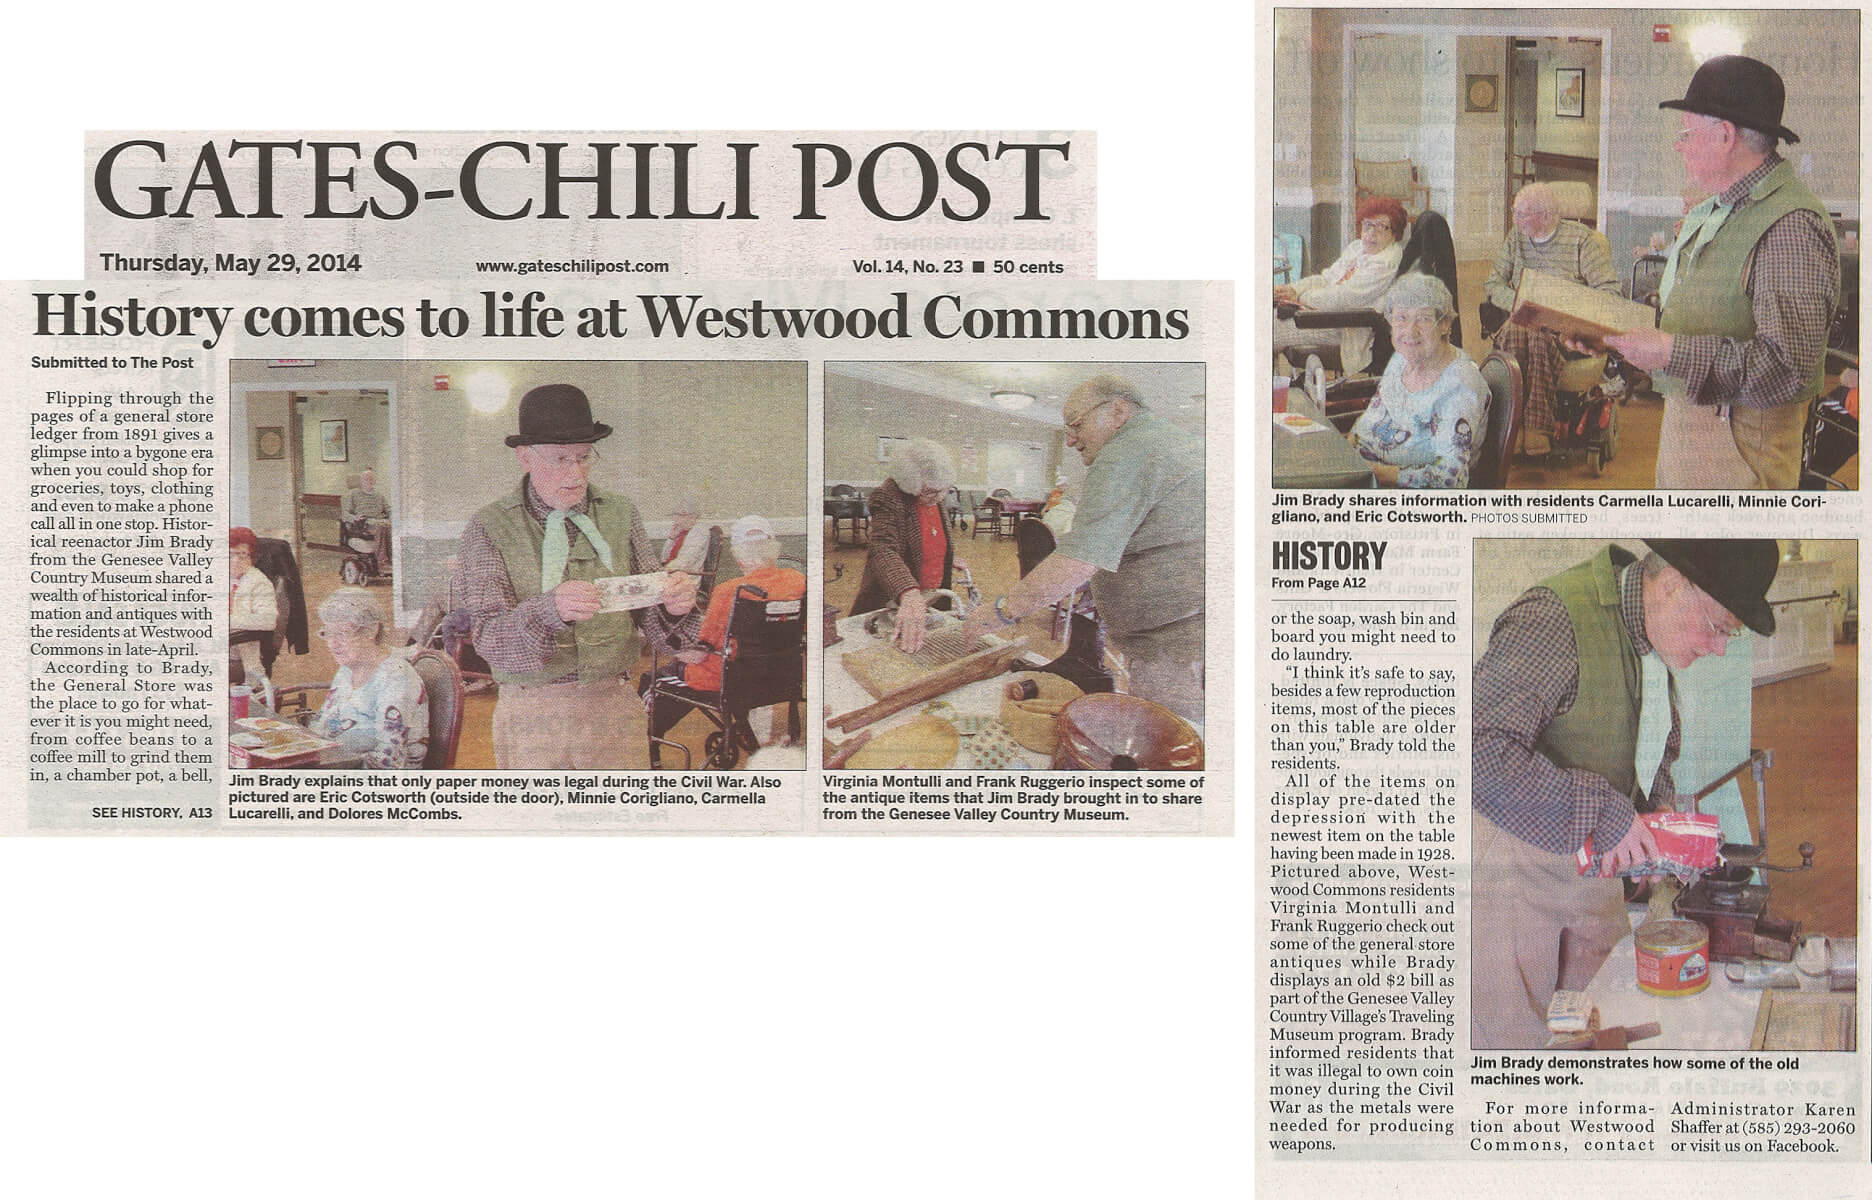 History Comes to Life at Westwood Commons General Store article in the Gates Chili Post May 25, 2014